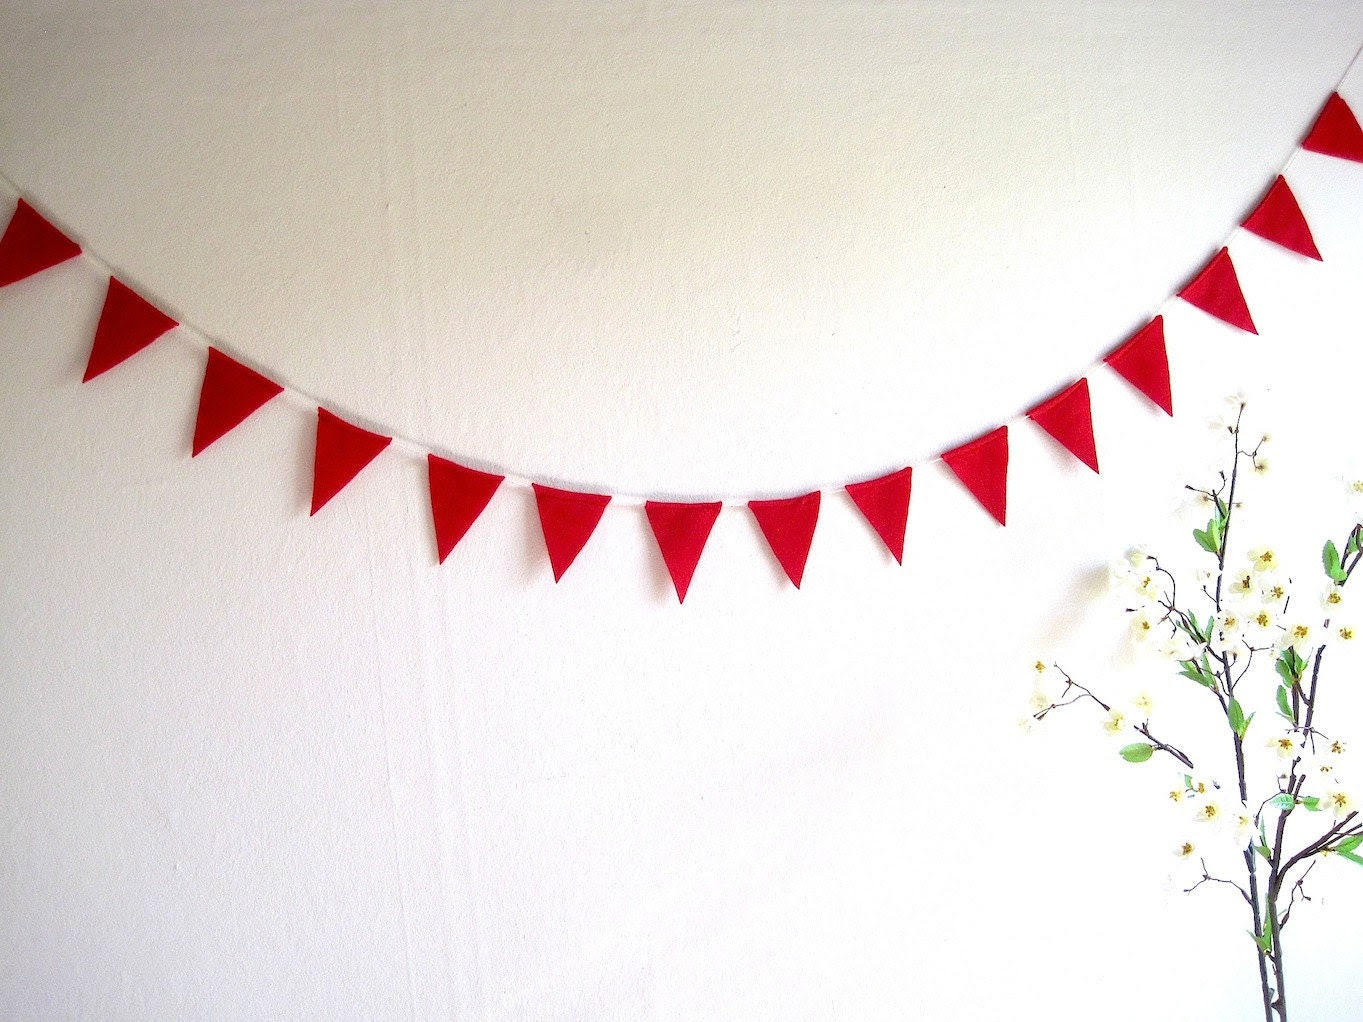 Red Bunting Banner, Valentines day red felt pennant flags, red wedding bunting decoration, xmas felt garland, reusable, handmade - AntnFrog